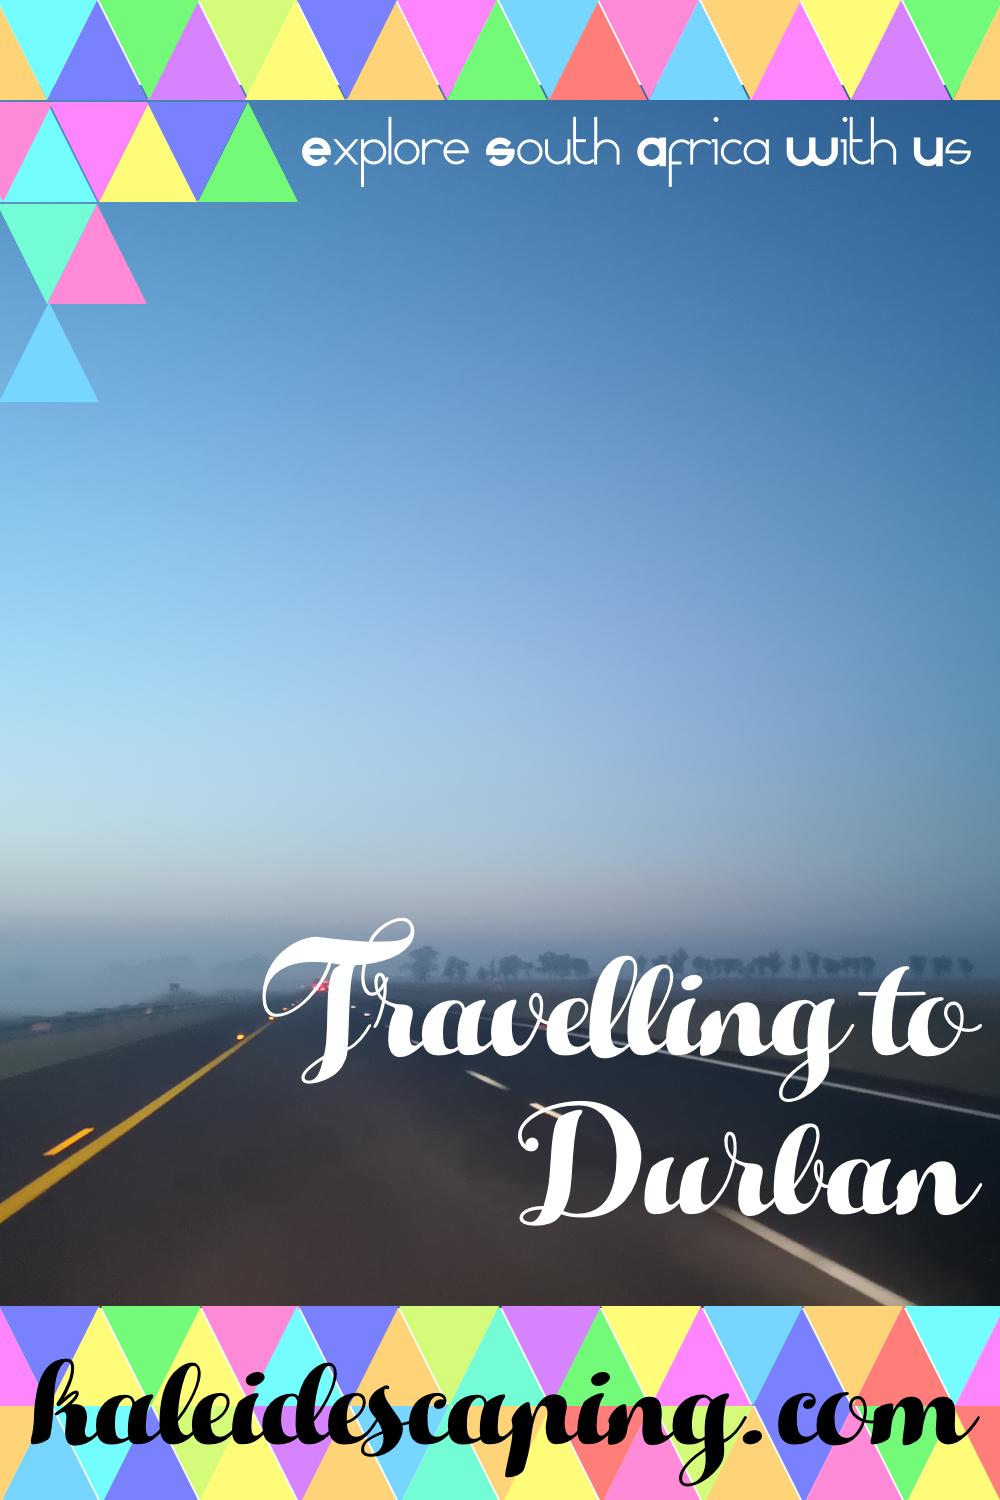 Travelling-to-Durban-South-Africa